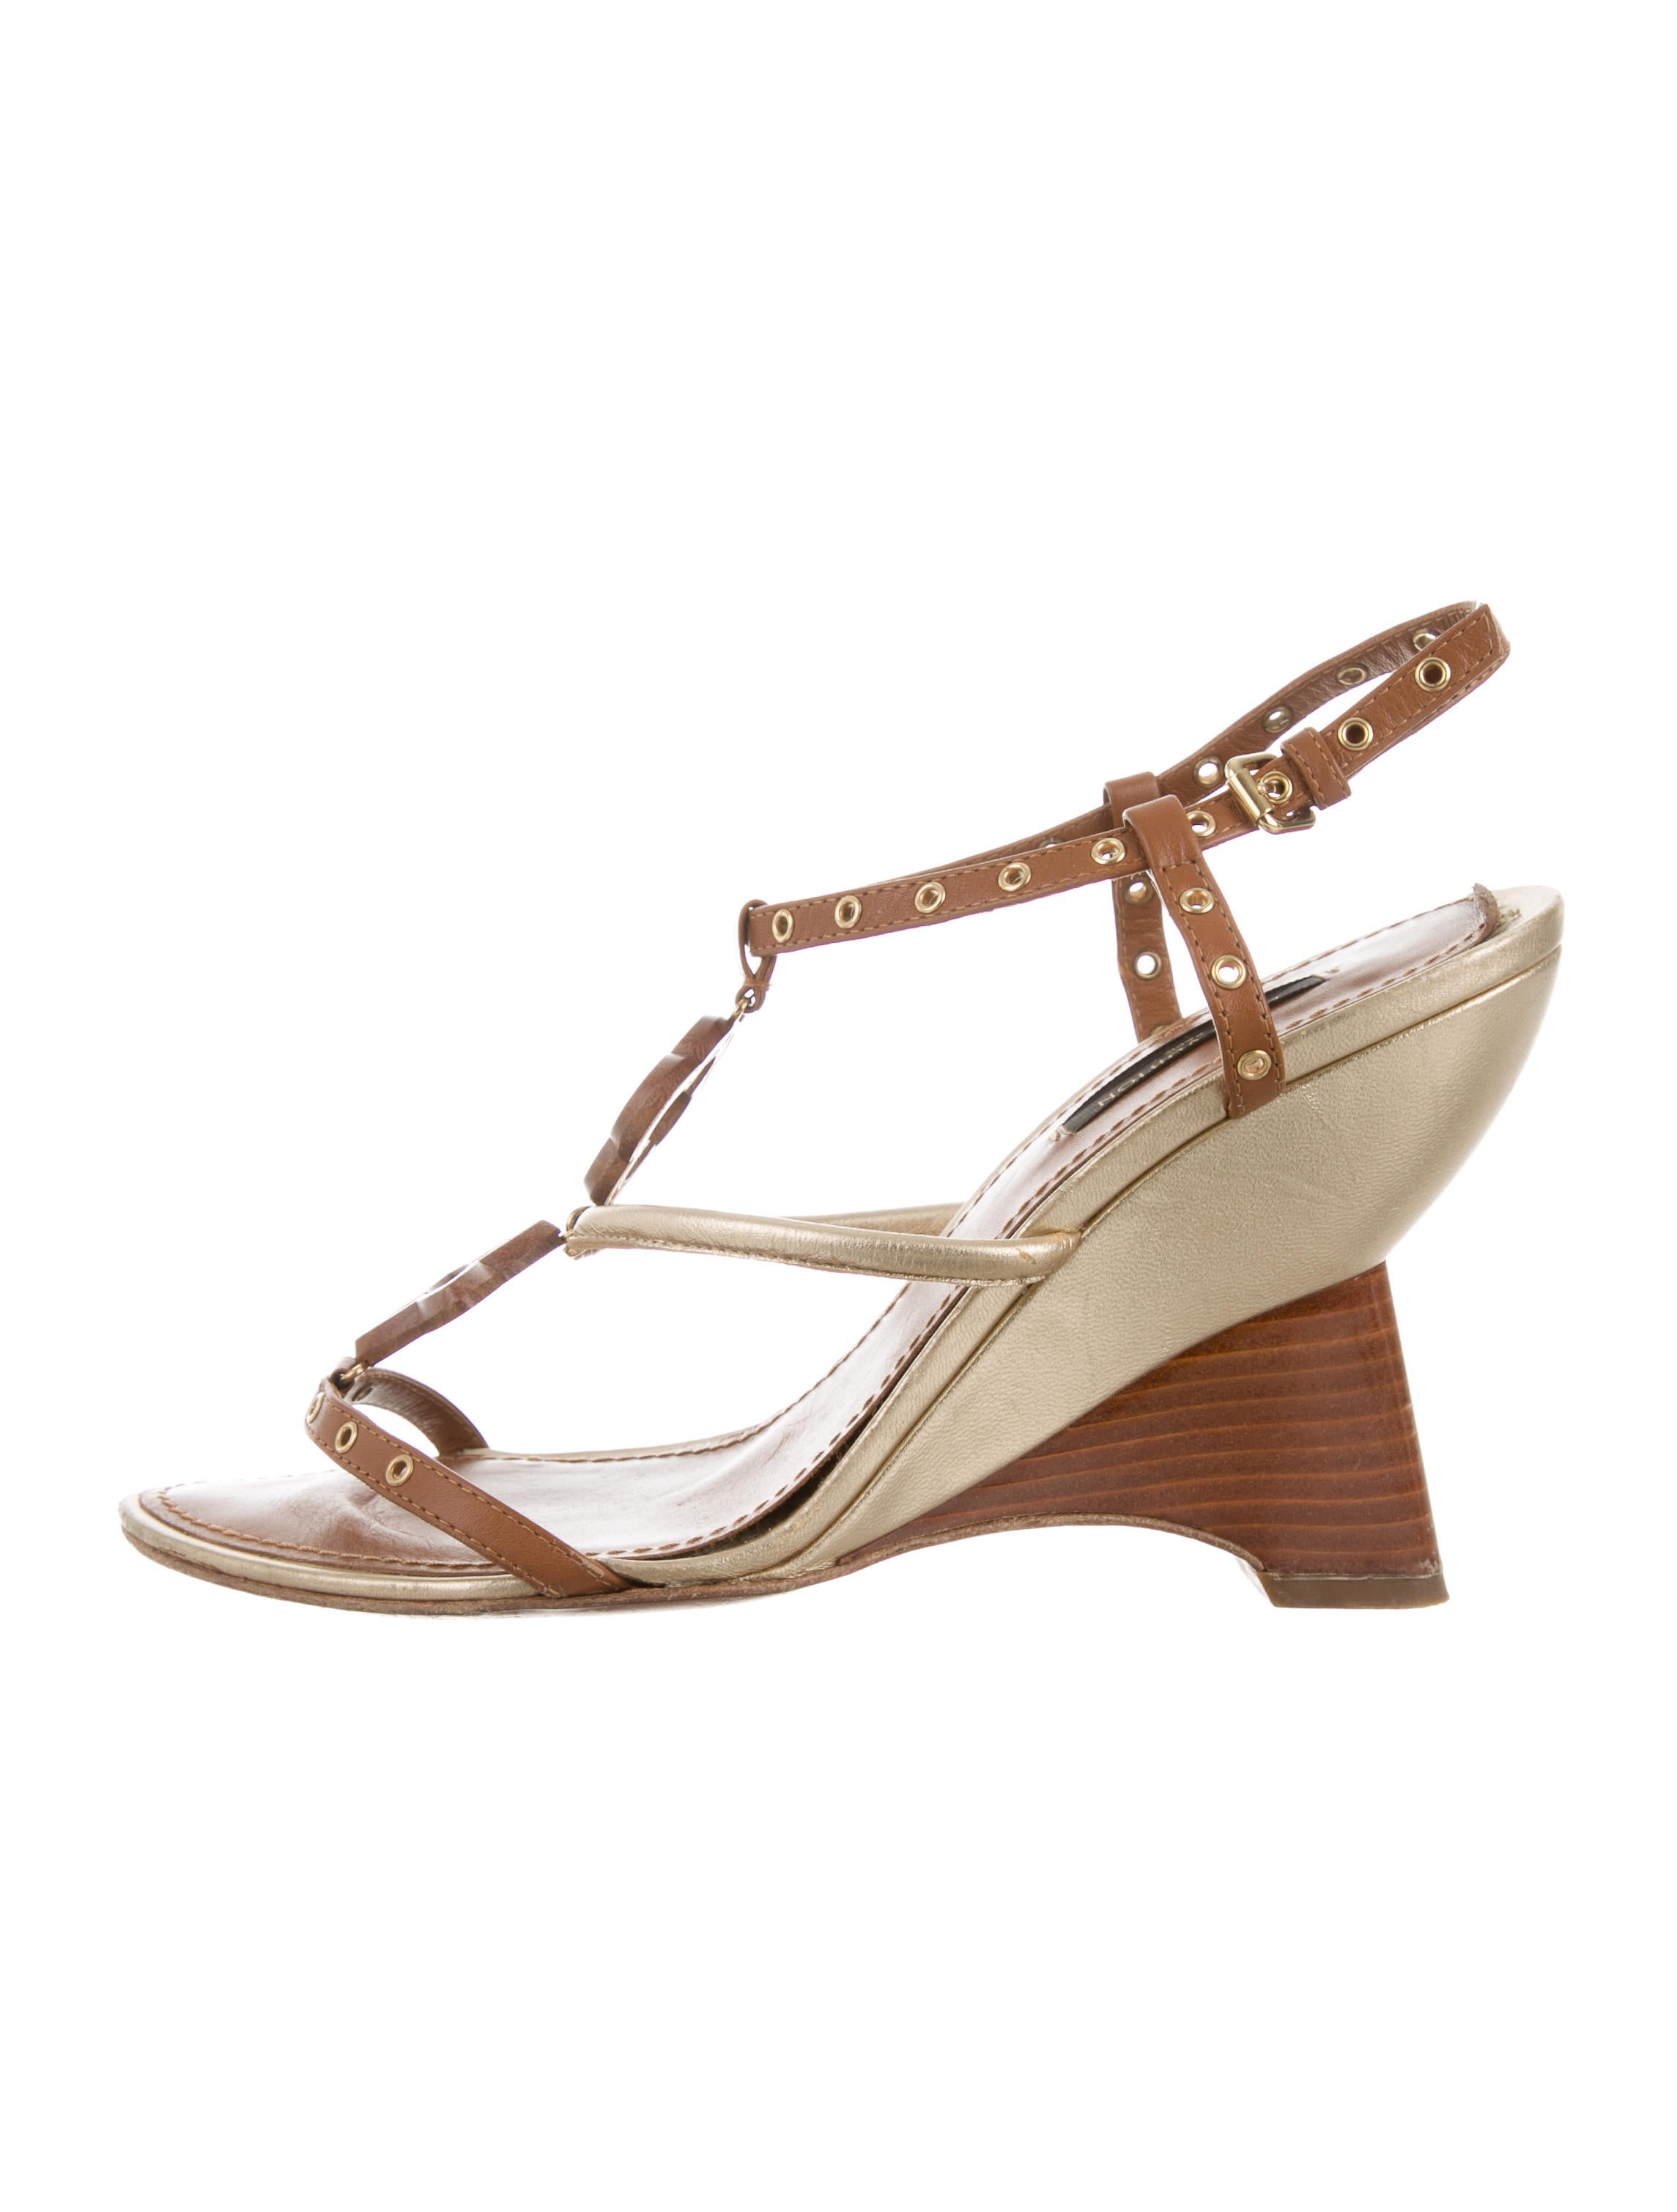 louis vuitton embellished wedge sandals shoes